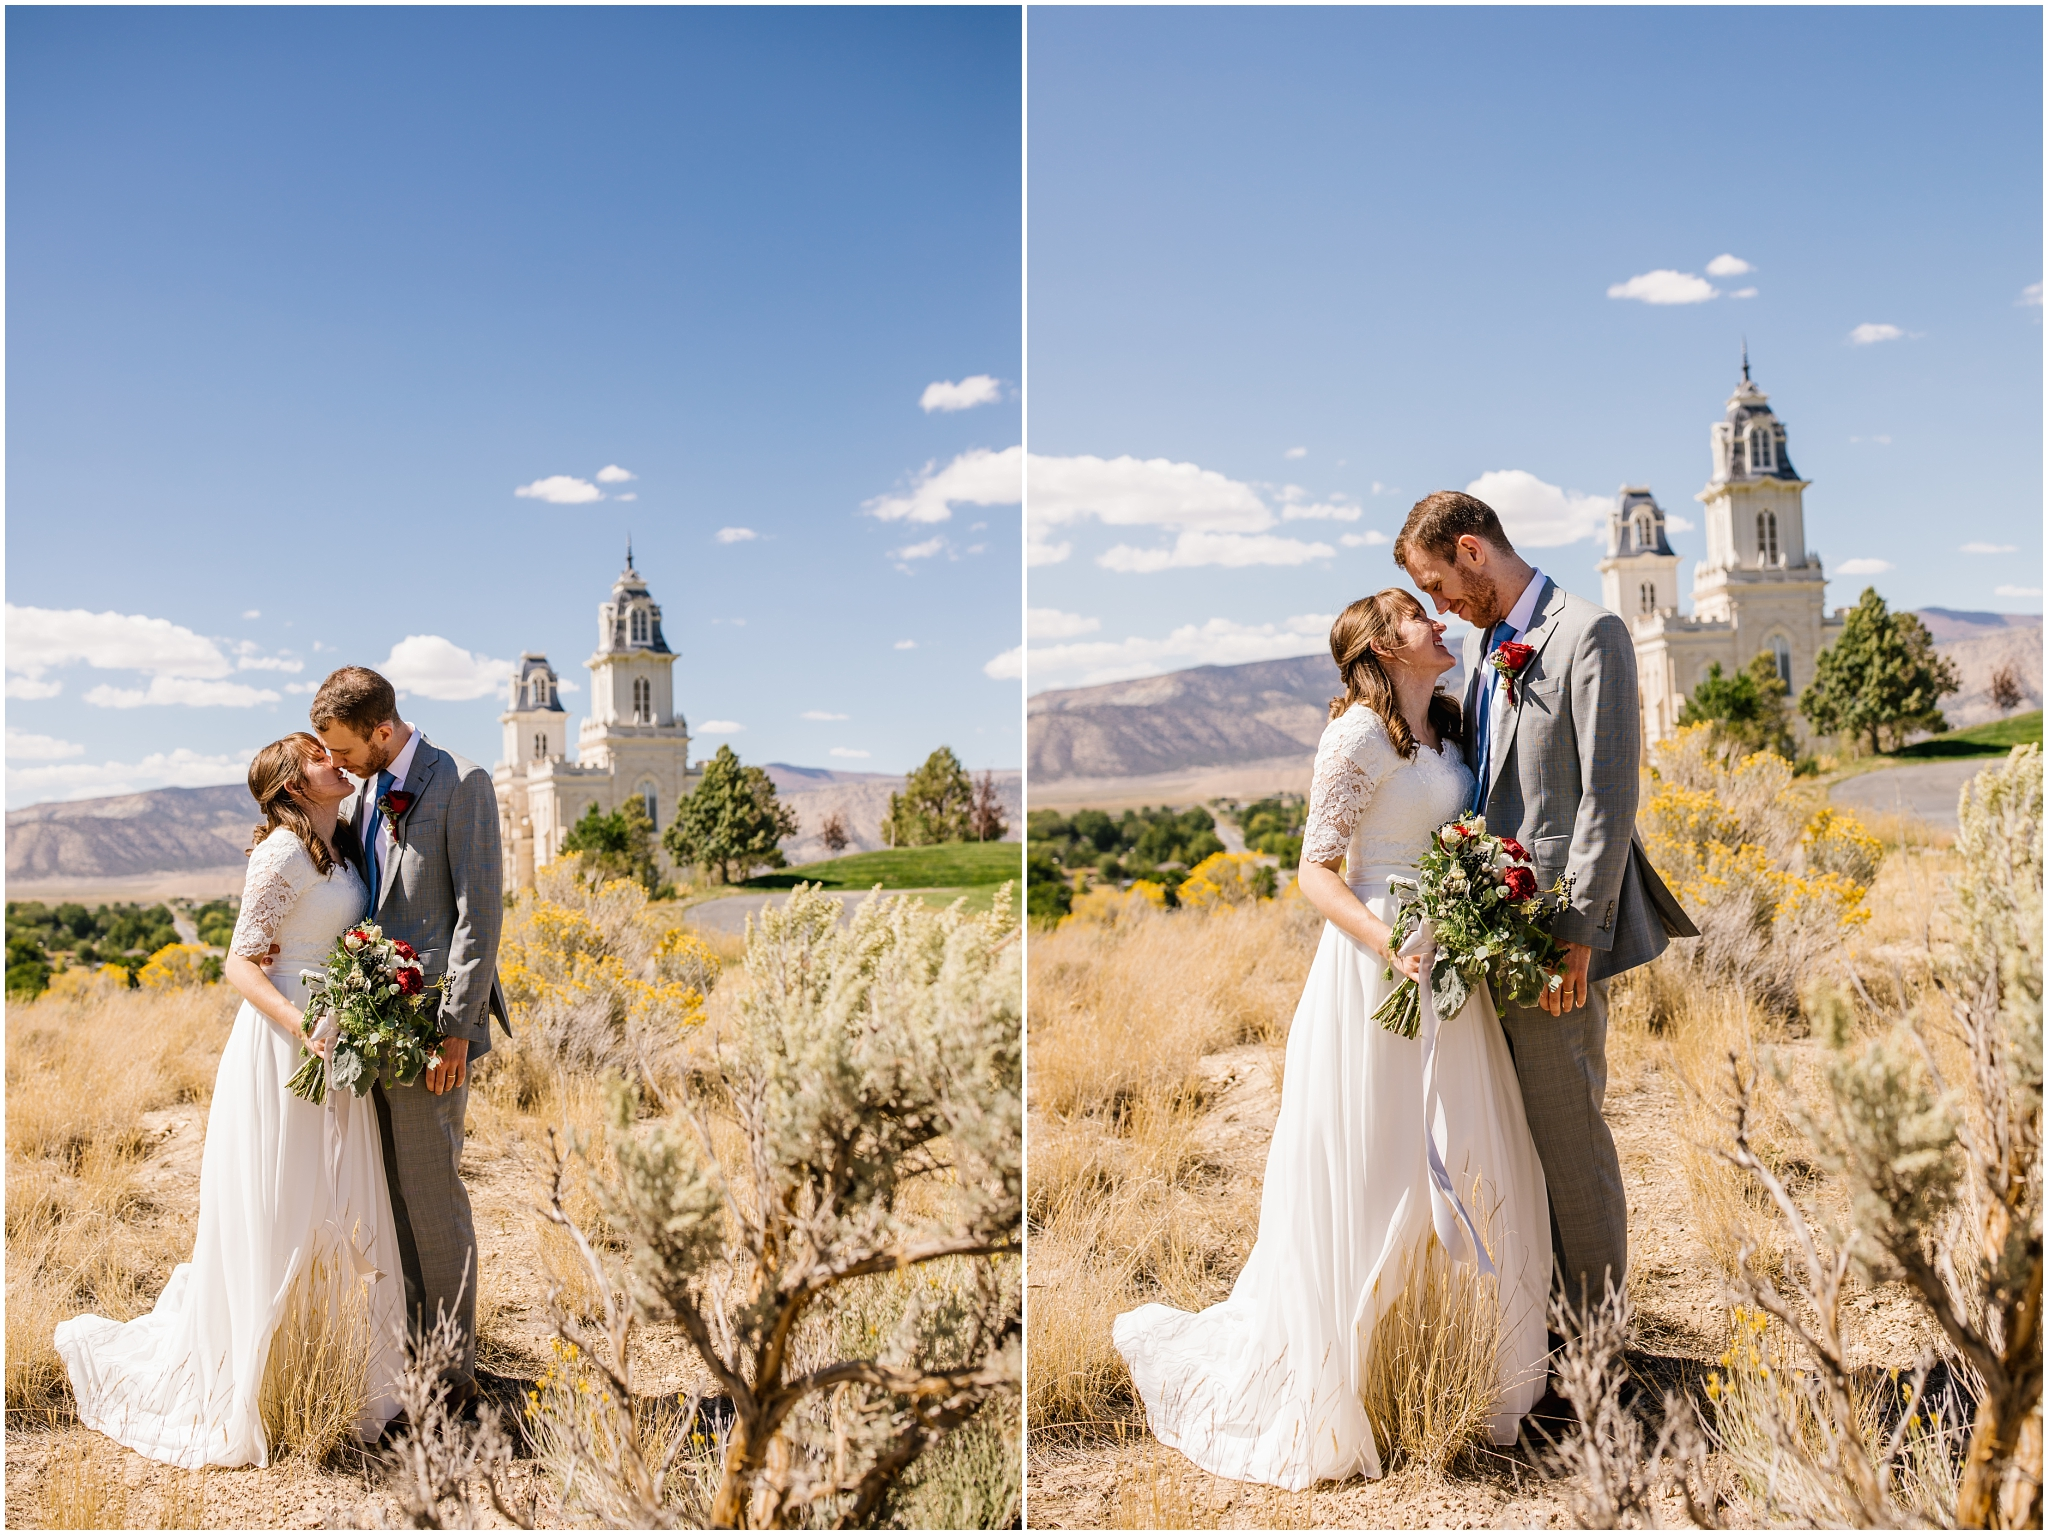 BrynneWinston-111_Lizzie-B-Imagery-Utah-Wedding-Photographer-Utah-County-Manti-Temple.jpg